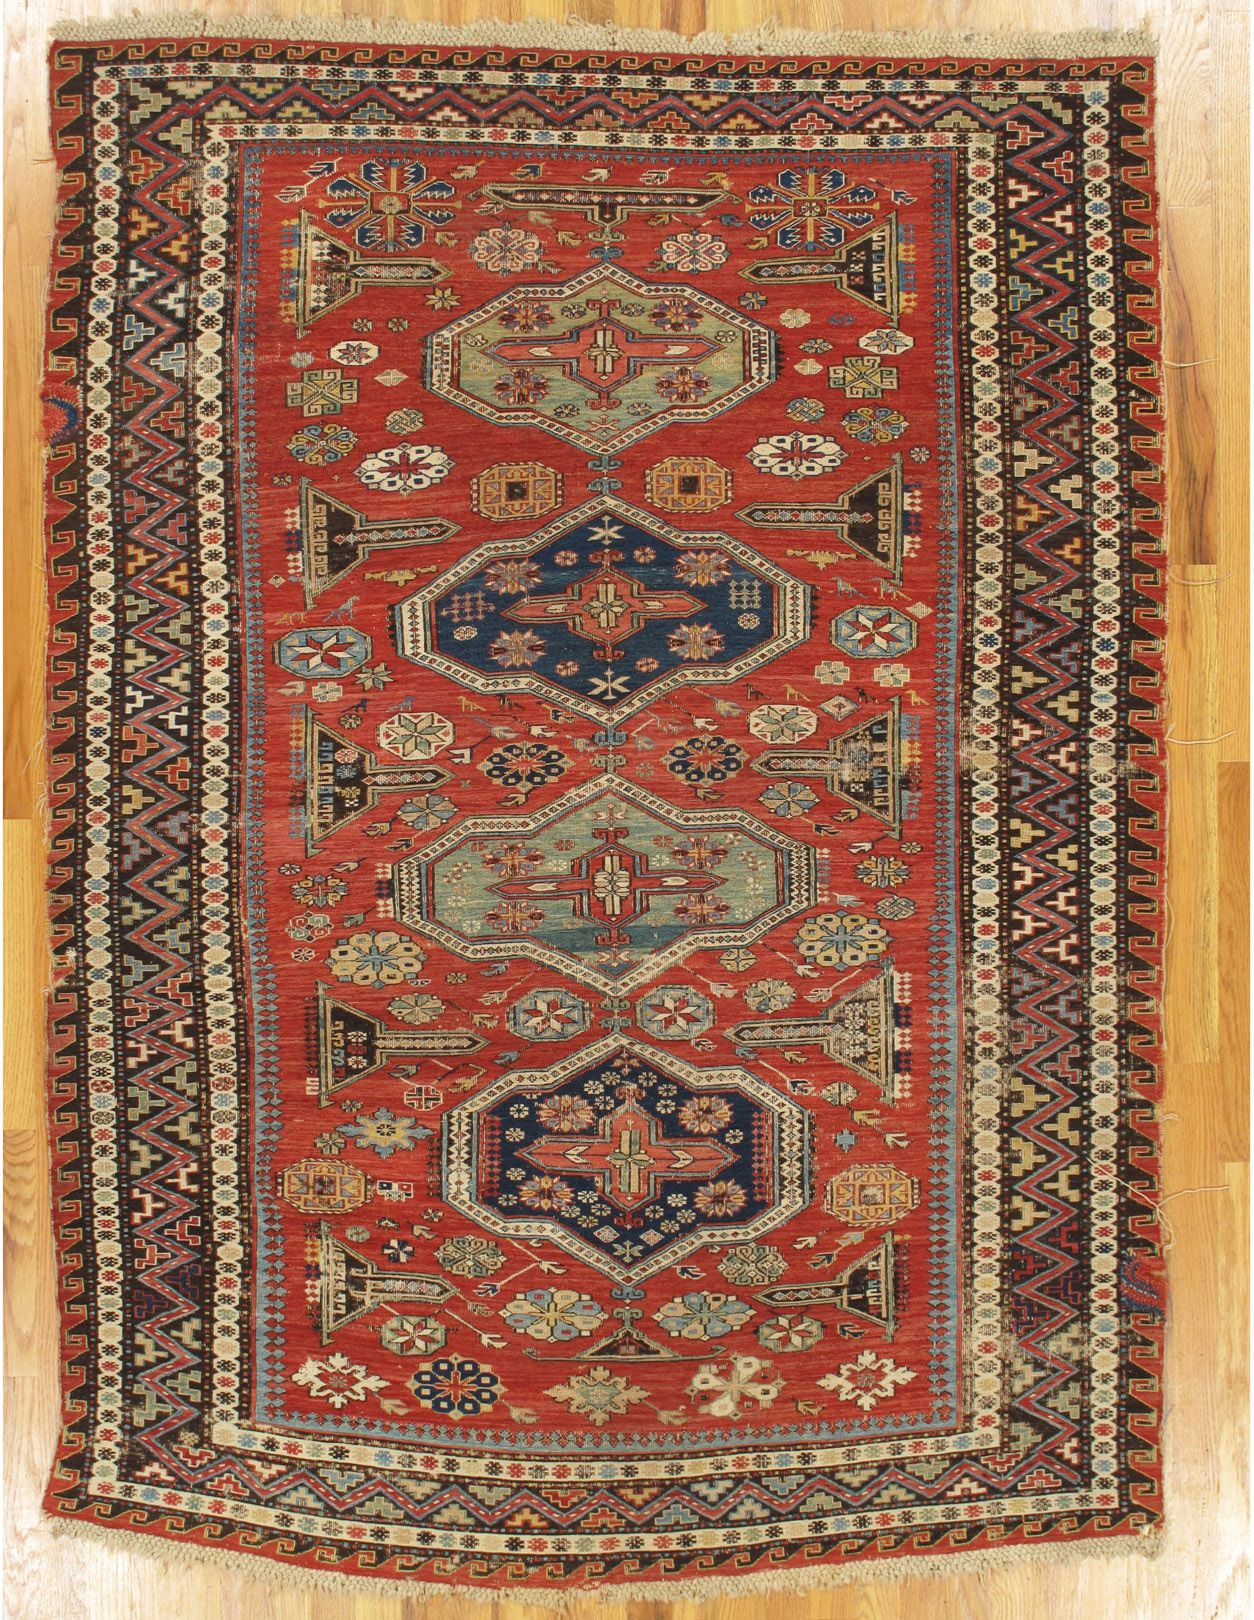 Soumak Flatwoven Rug From Eastern Caucasus West Coast Of The Caspian Sea Age Circa 1870 Size 6 5 X4 7 196x140 Cm Rugs Rugs On Carpet Flat Woven Rug